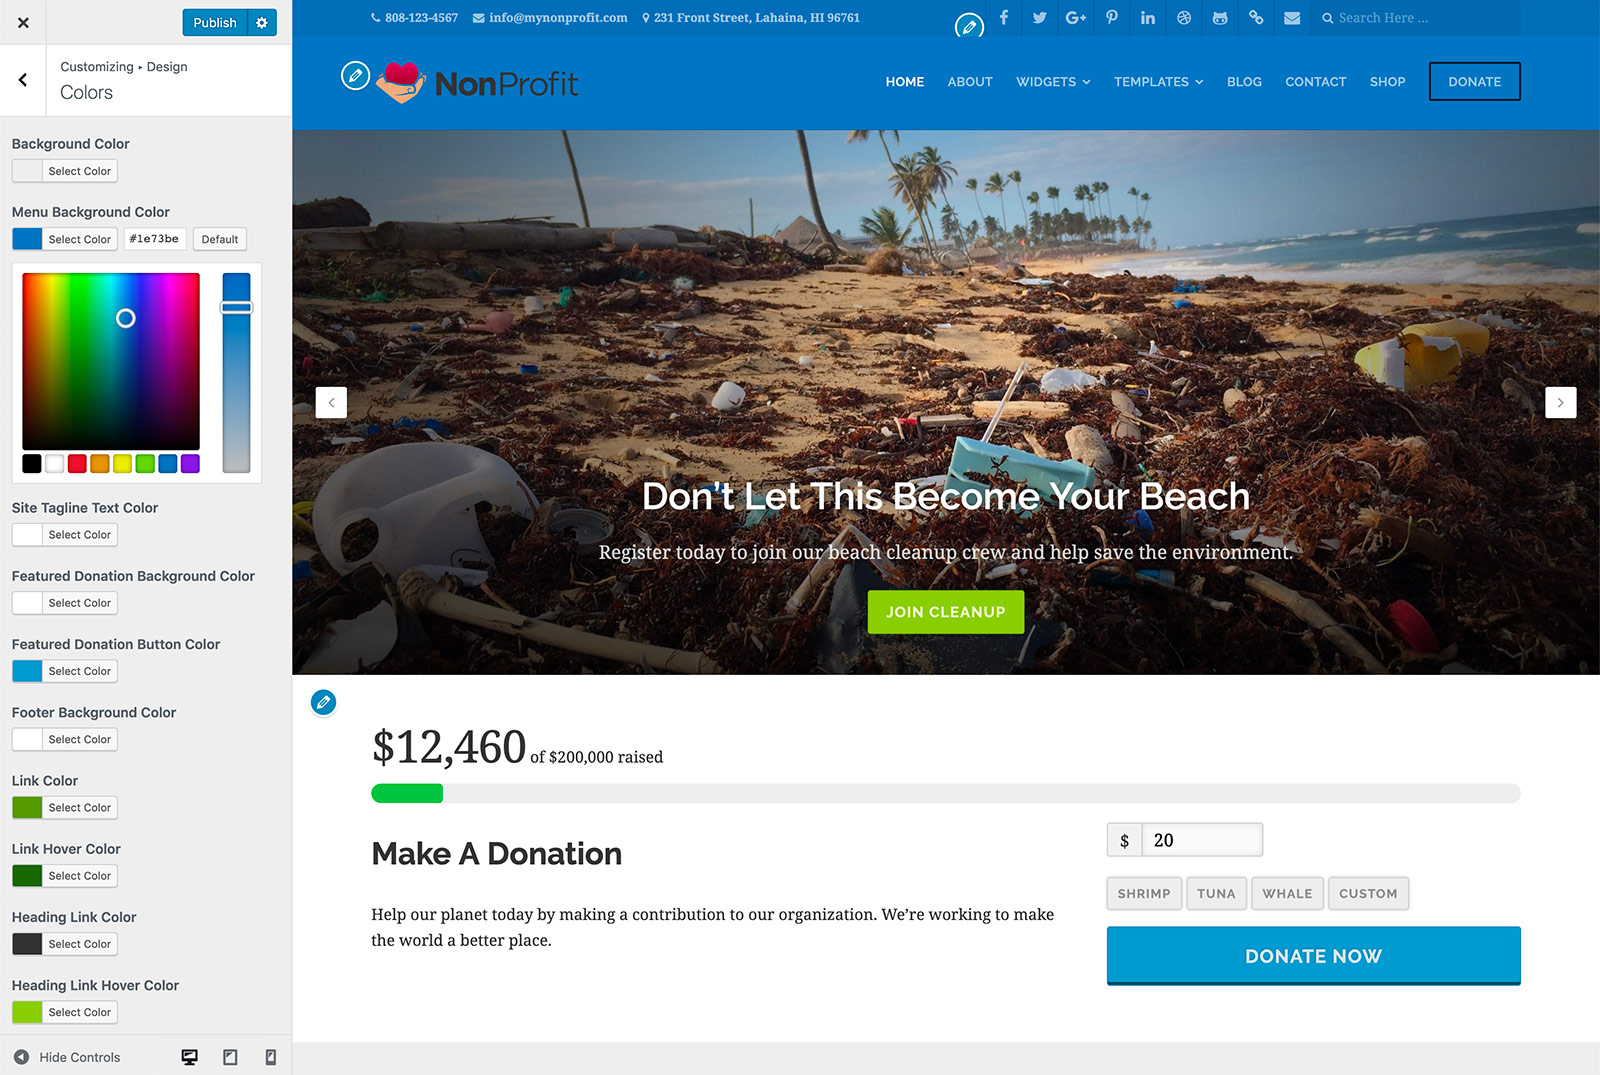 nonprofit-theme-customizer-abau3.jpg